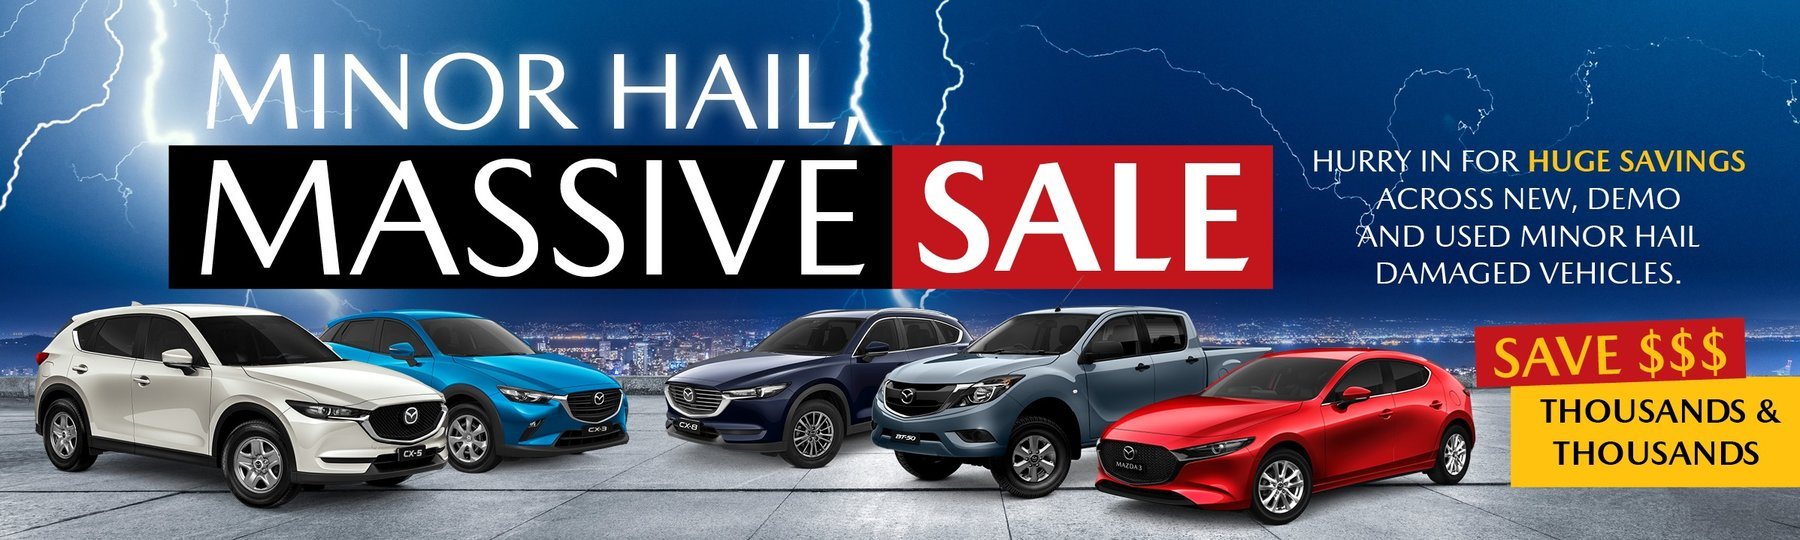 Minor Hail, Massive Sale